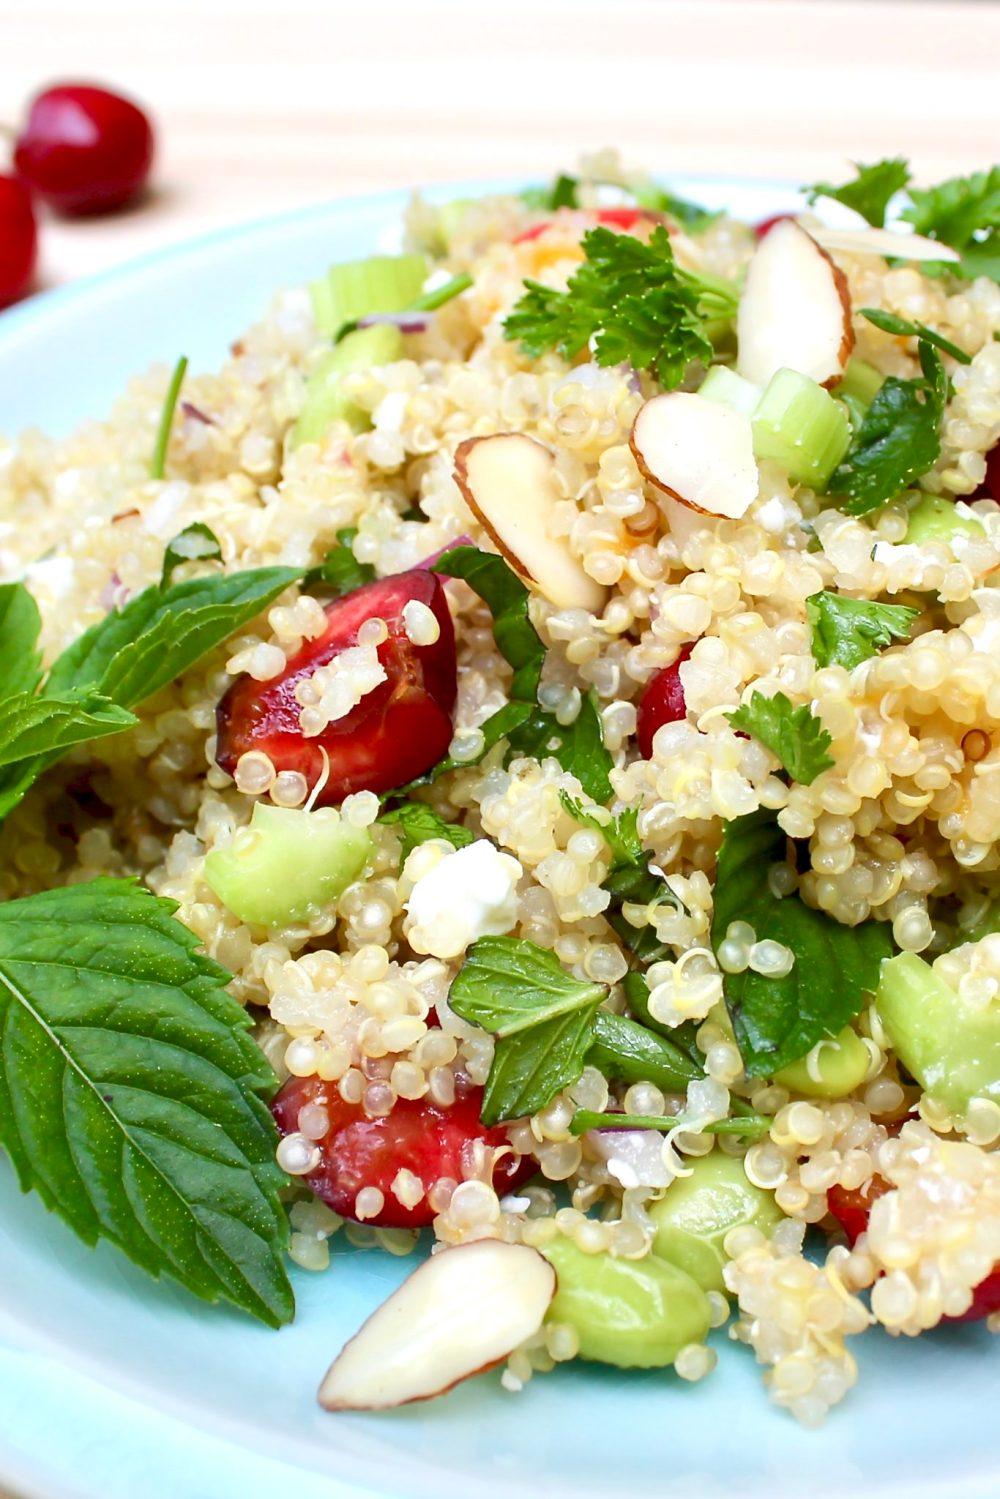 Sweet Cherry & Feta Quinoa with Peach Vinaigrette-a light, flavor-packed salad that's delightful paired with virtually any grilled protein but stands alone as a complete vegetarian meal